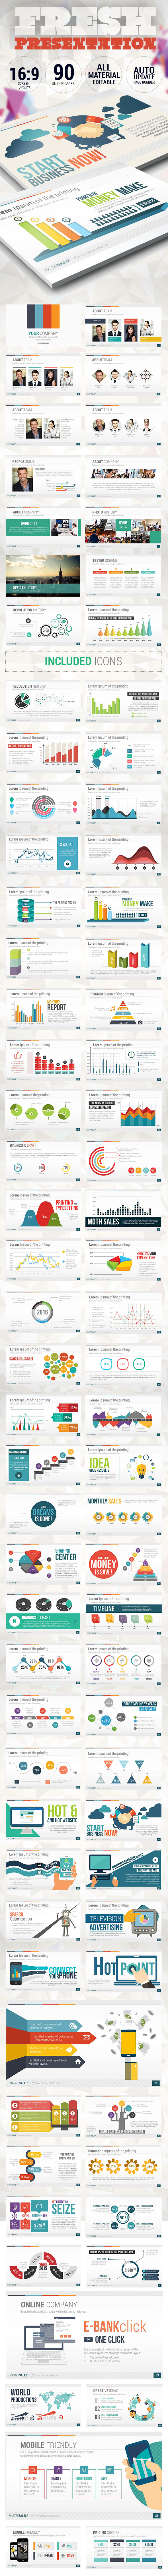 Fresh and Clean Presentation - Creative PowerPoint Templates